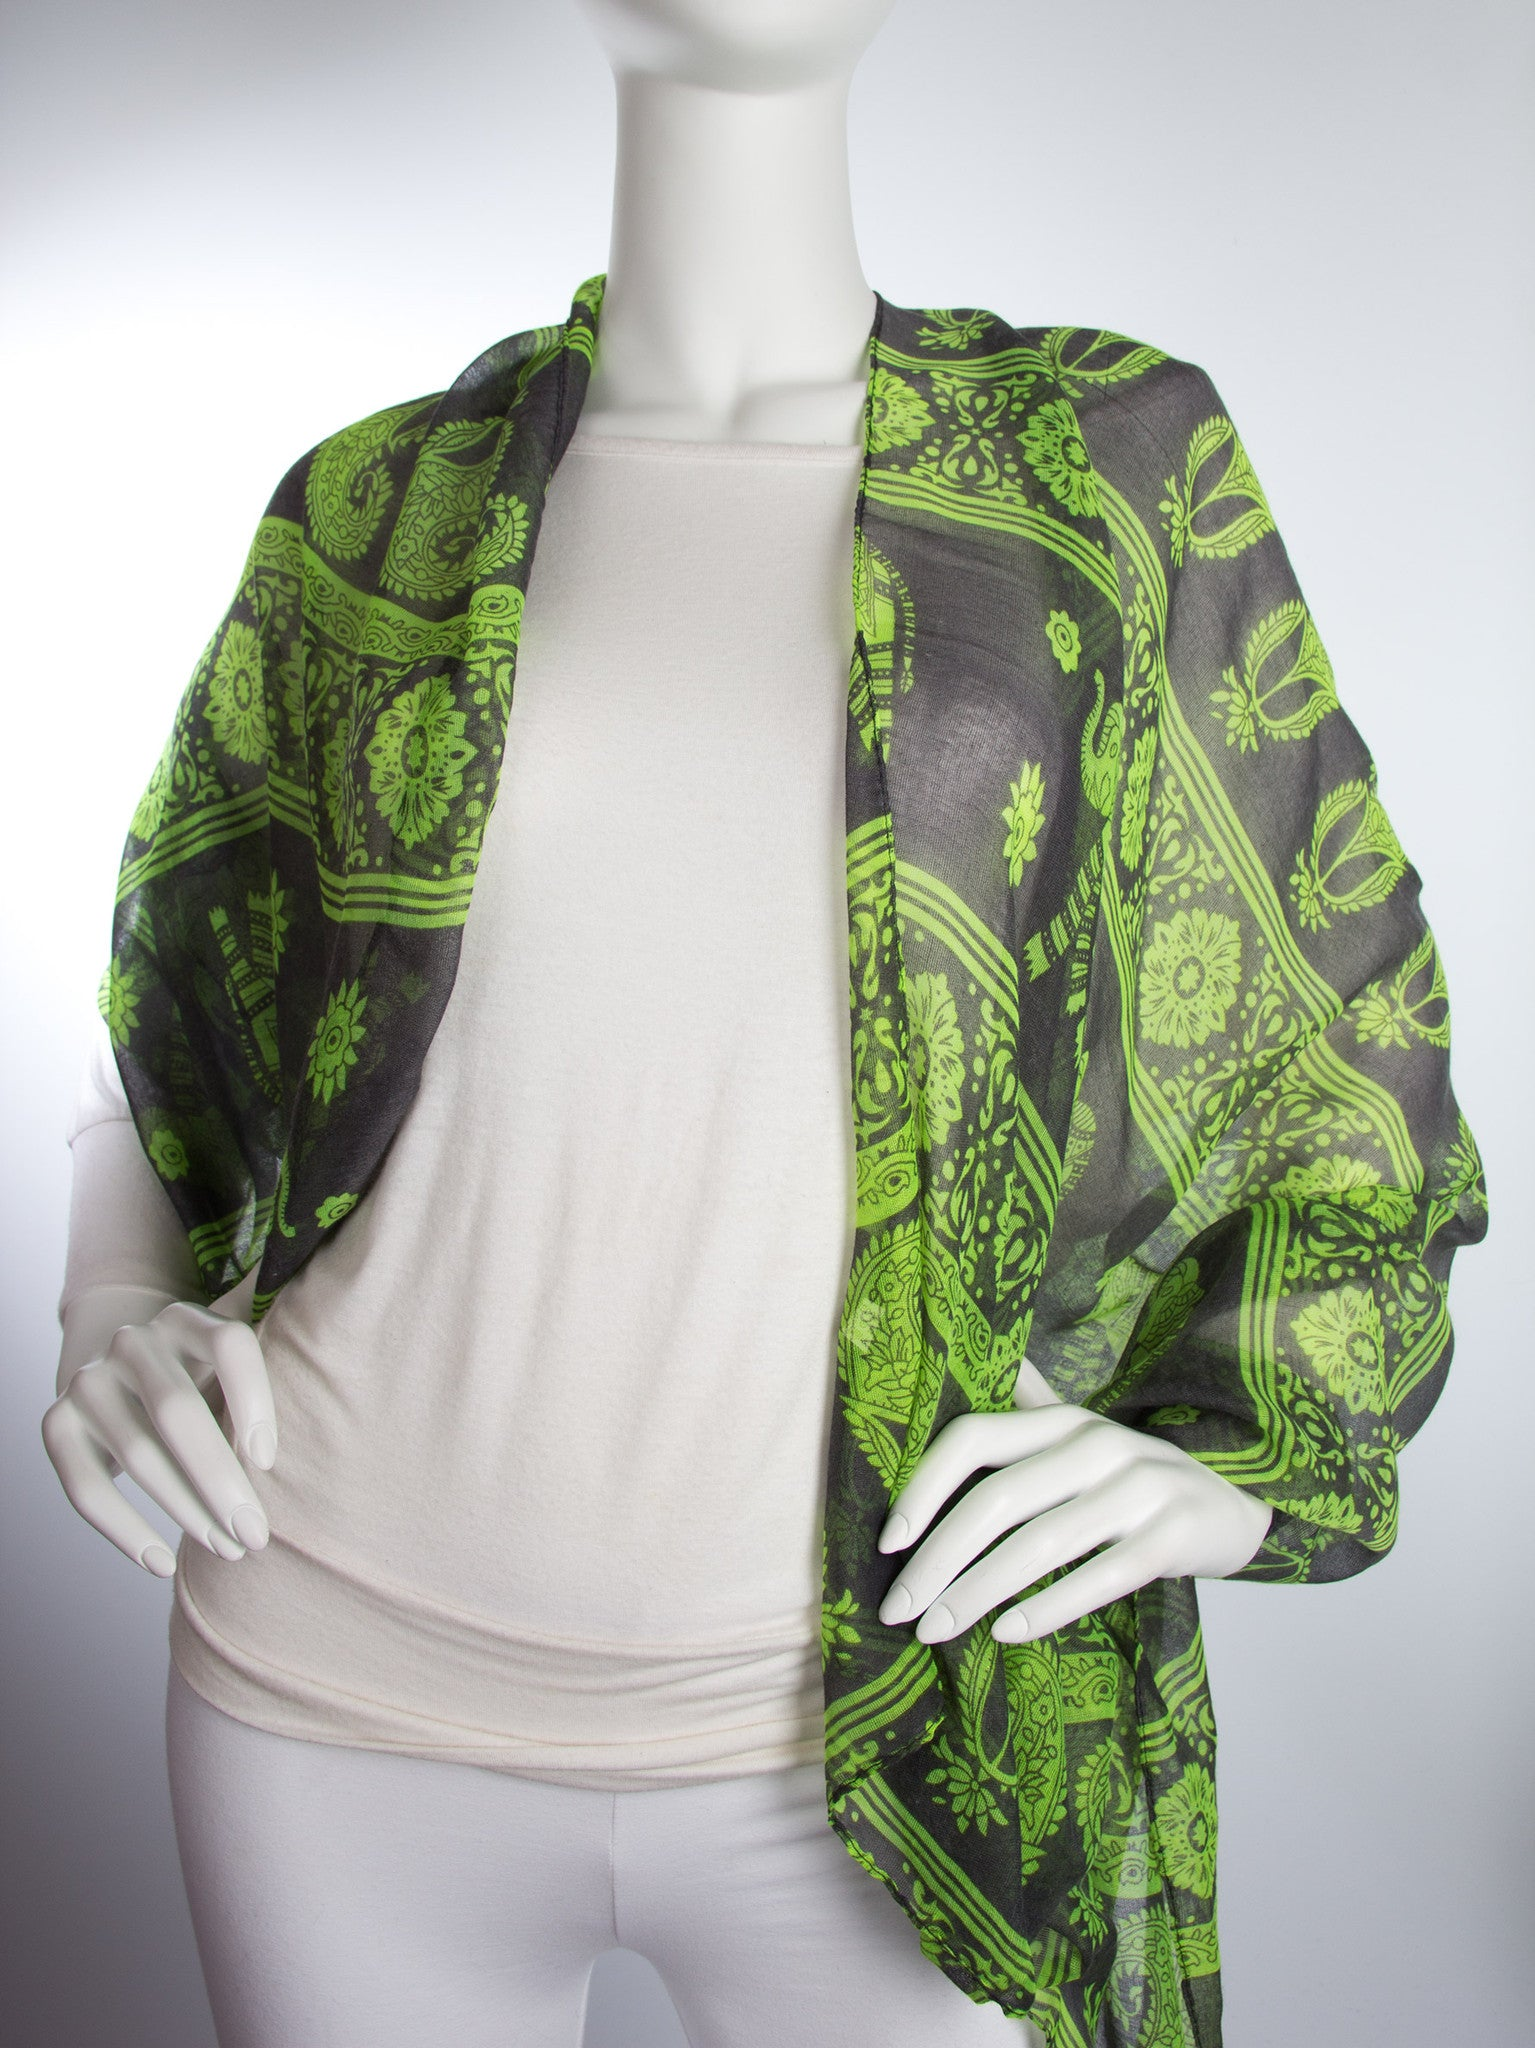 Scarves - Gaja Shawl, Paisley Indian Elephant Print Scarf, Shawl, Beach Wrap -() Bohomonde  - 9